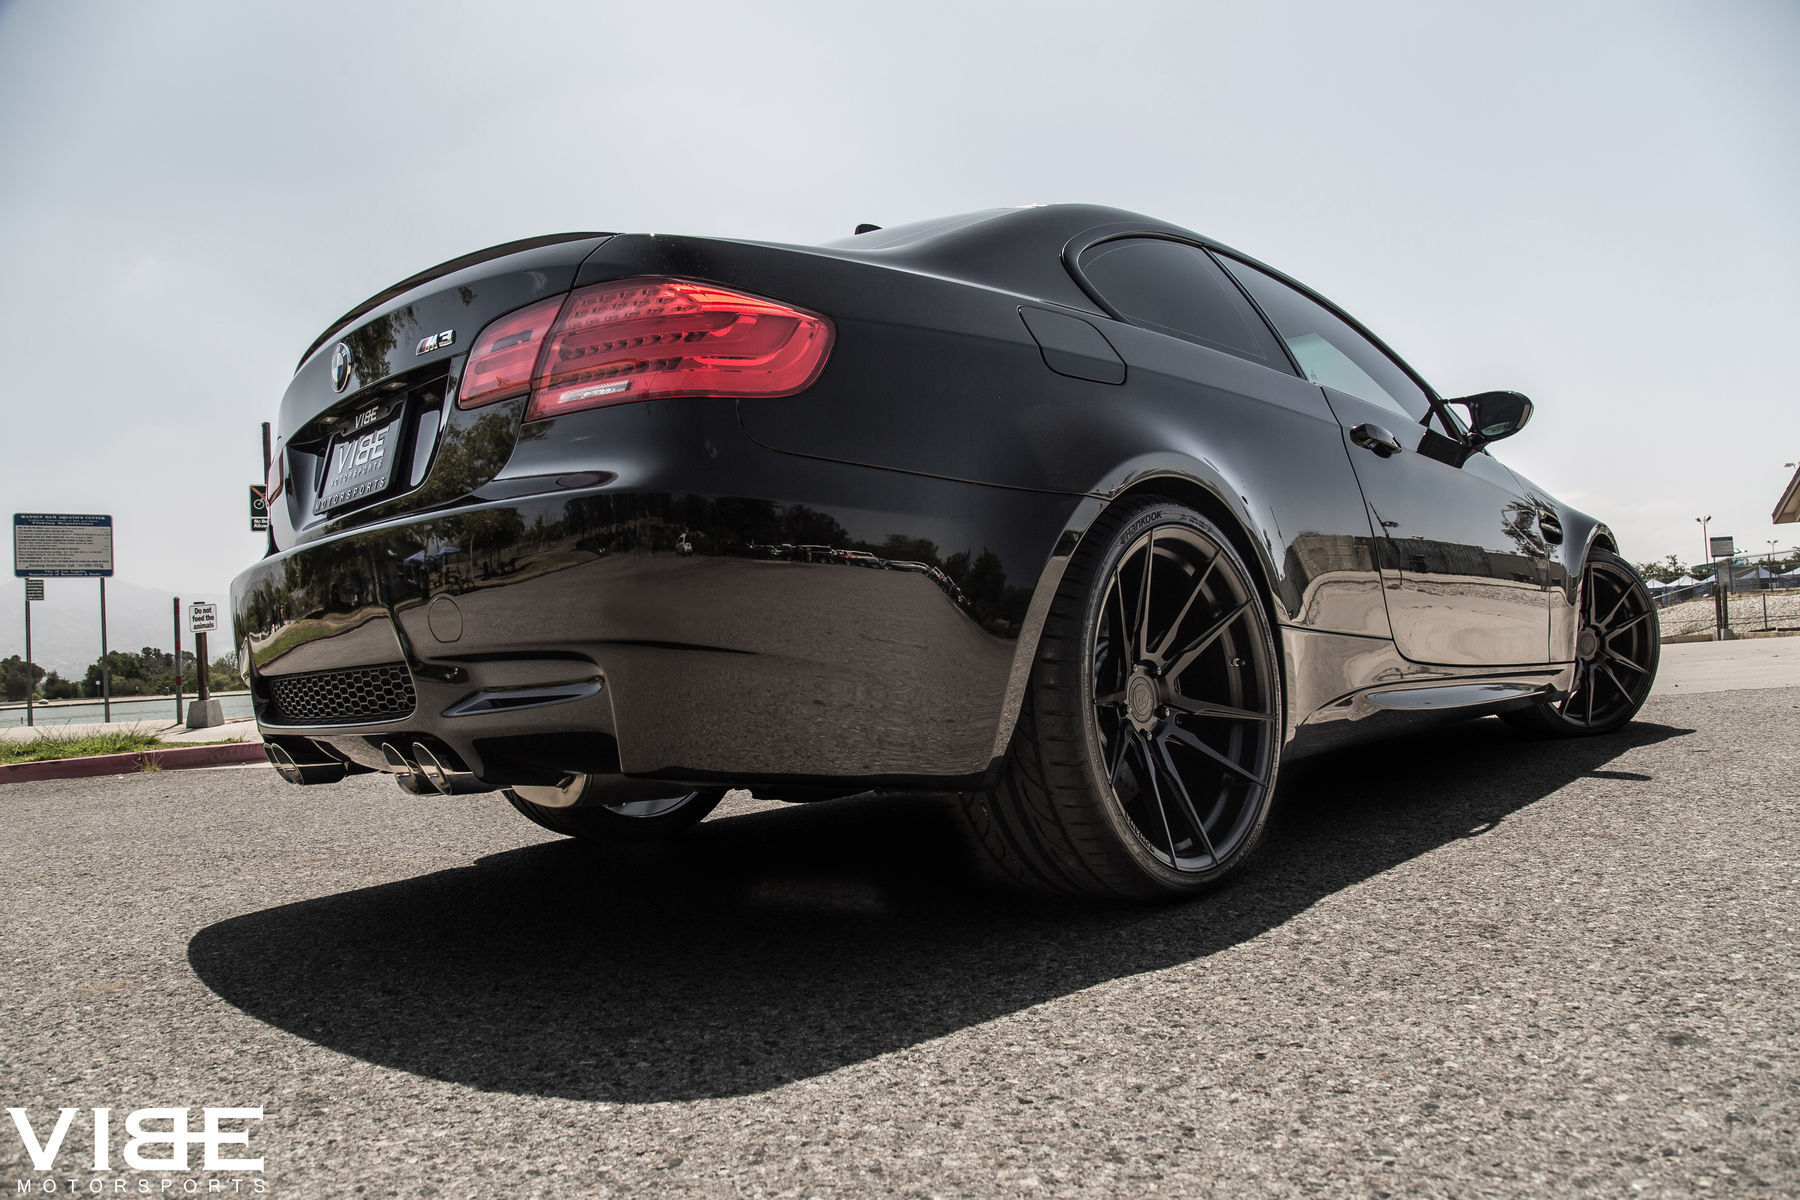 2012 BMW M3 | '12 E92 M3 on Rohana 20's - Low Rear Shot